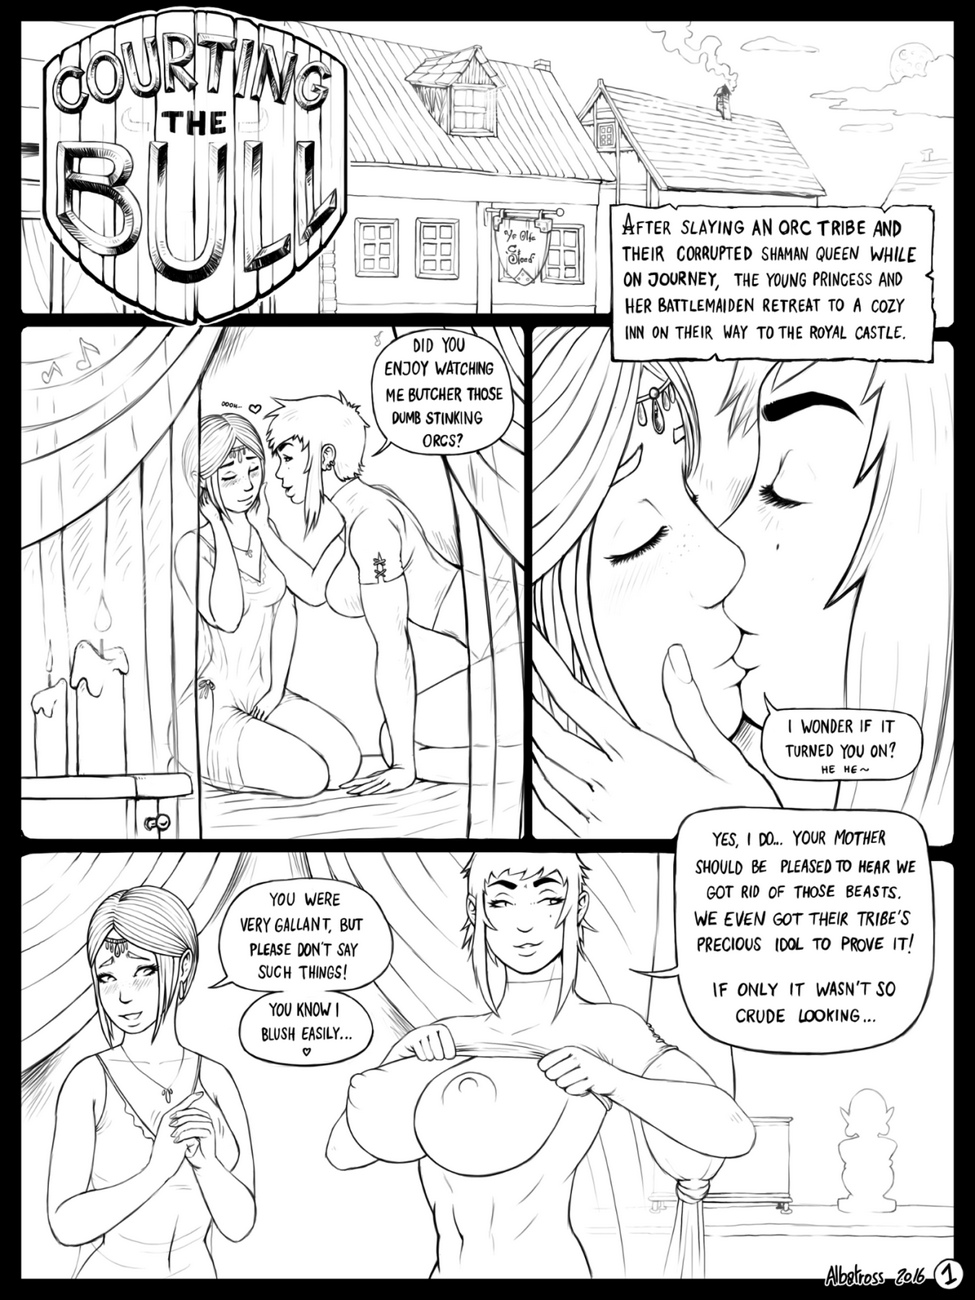 Courting-The-Bull 2 free sex comic